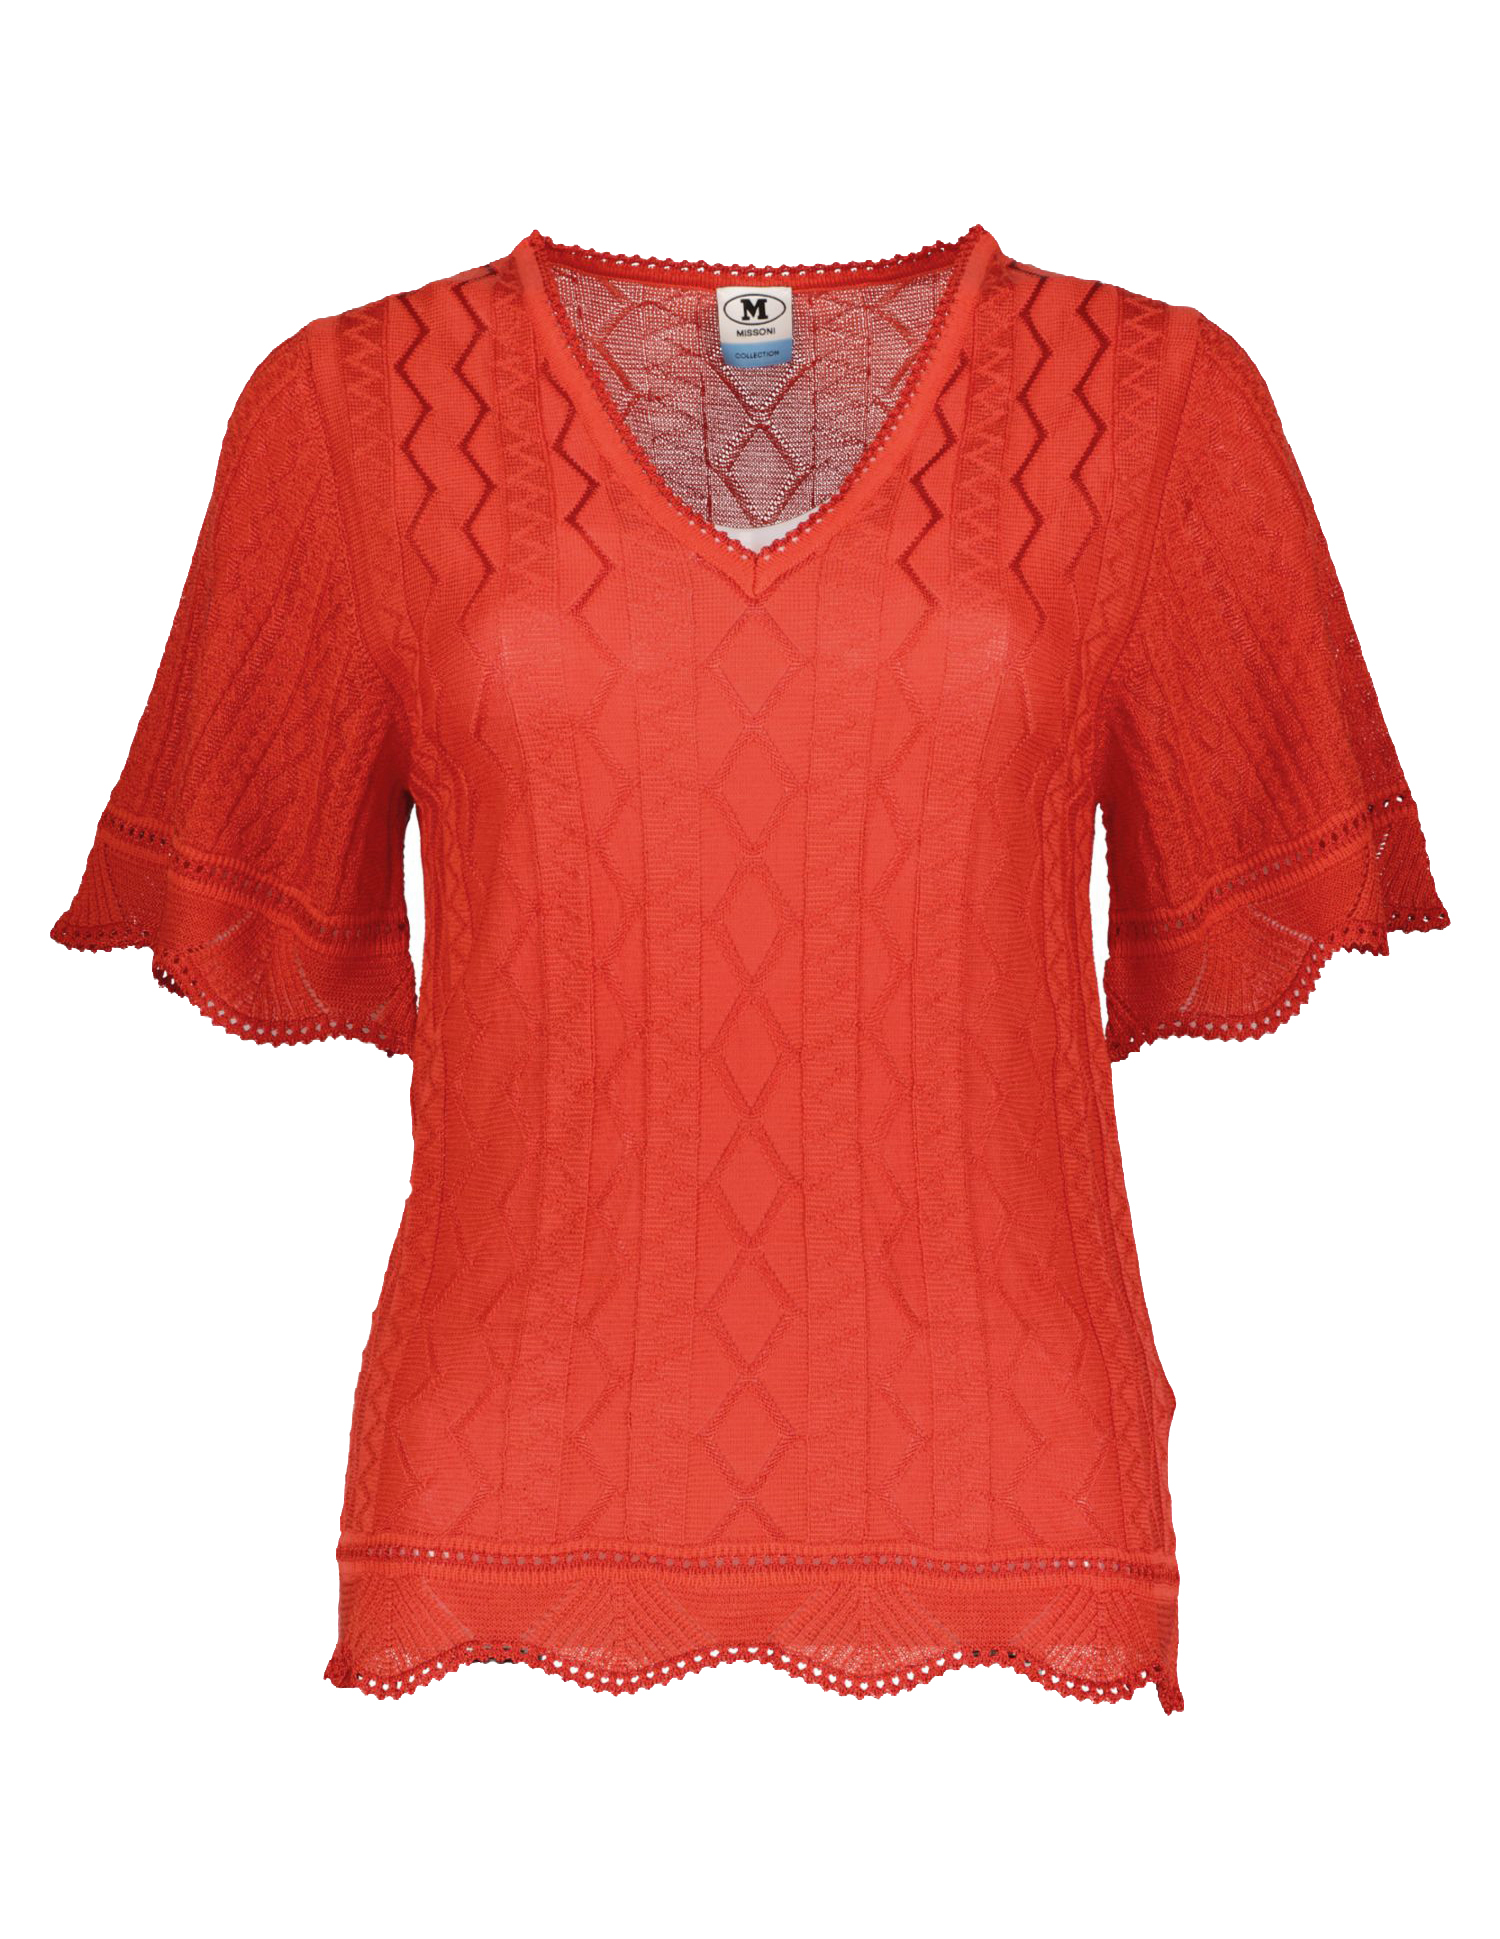 top red _Front_M1500x15000JPG